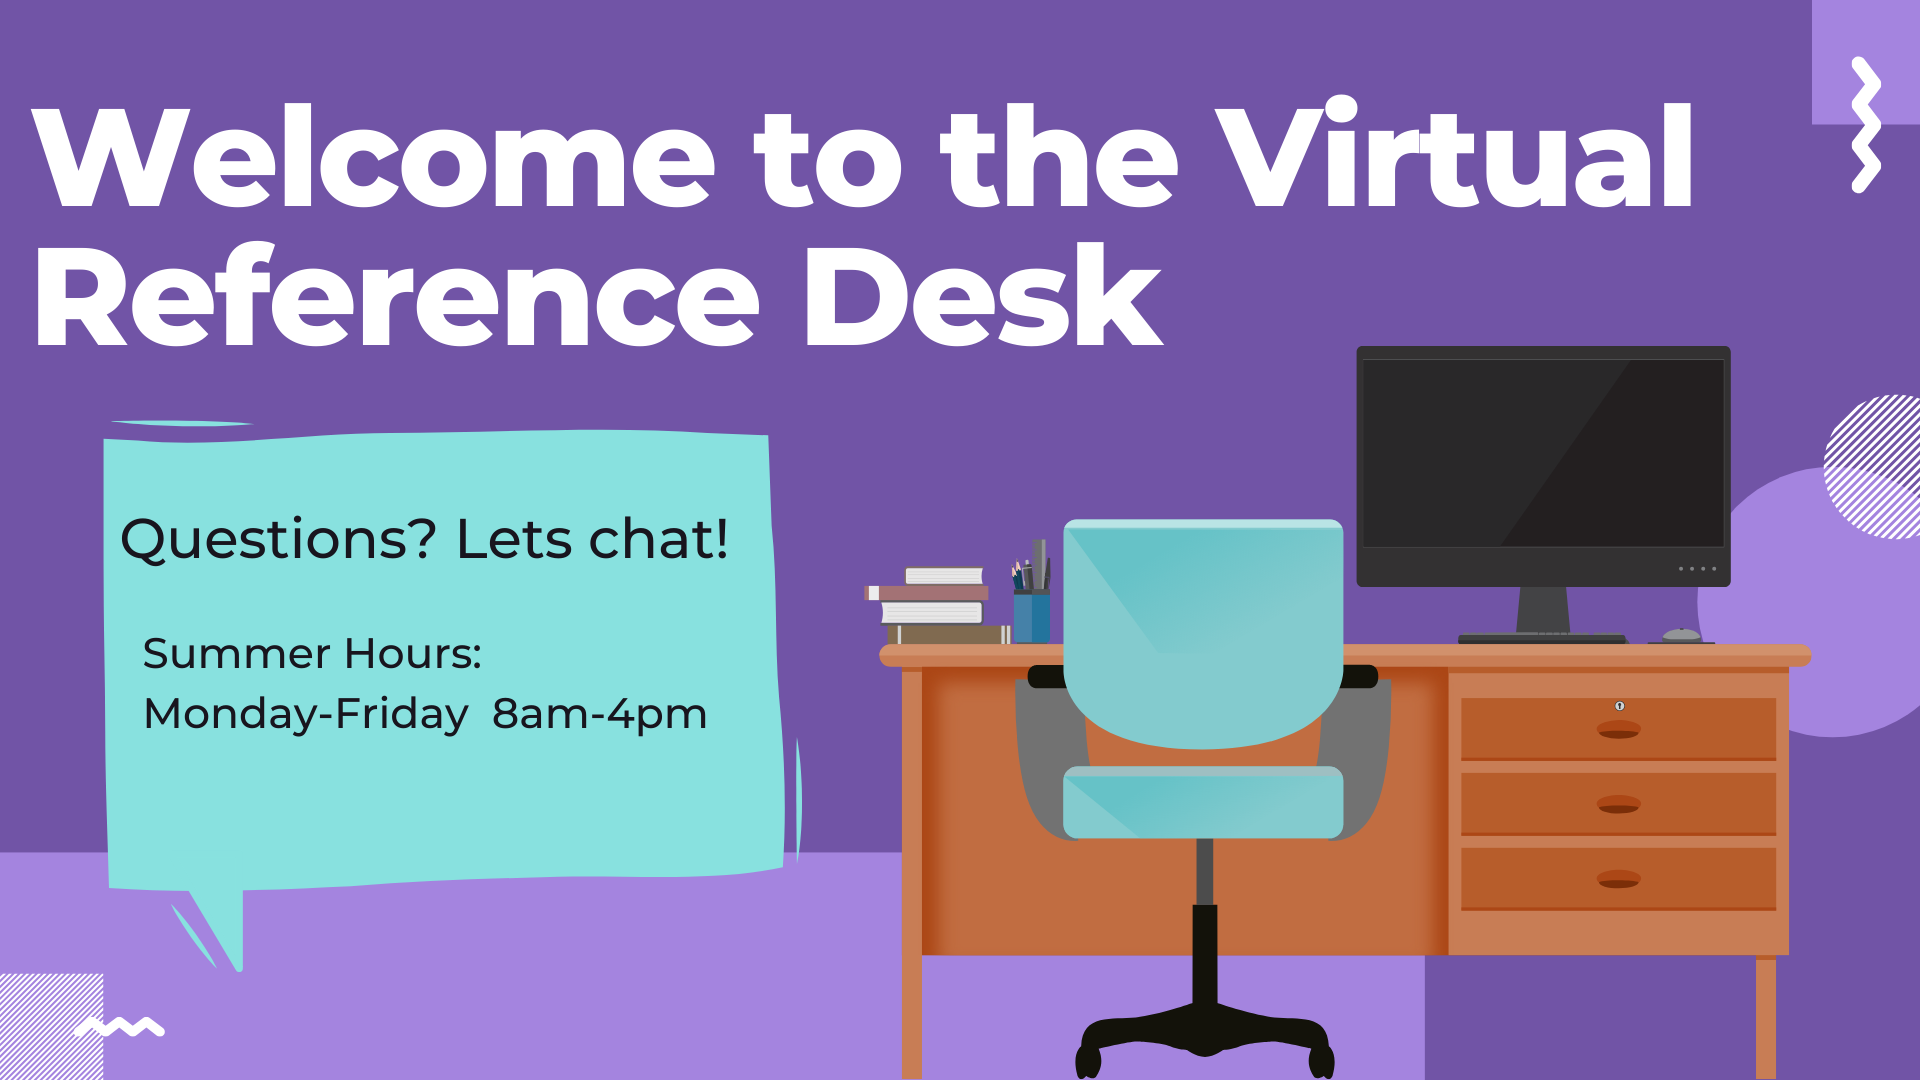 Welcome to the virtual reference desk. Click here for reference help. Hours 8am-8pm Monday through Friday